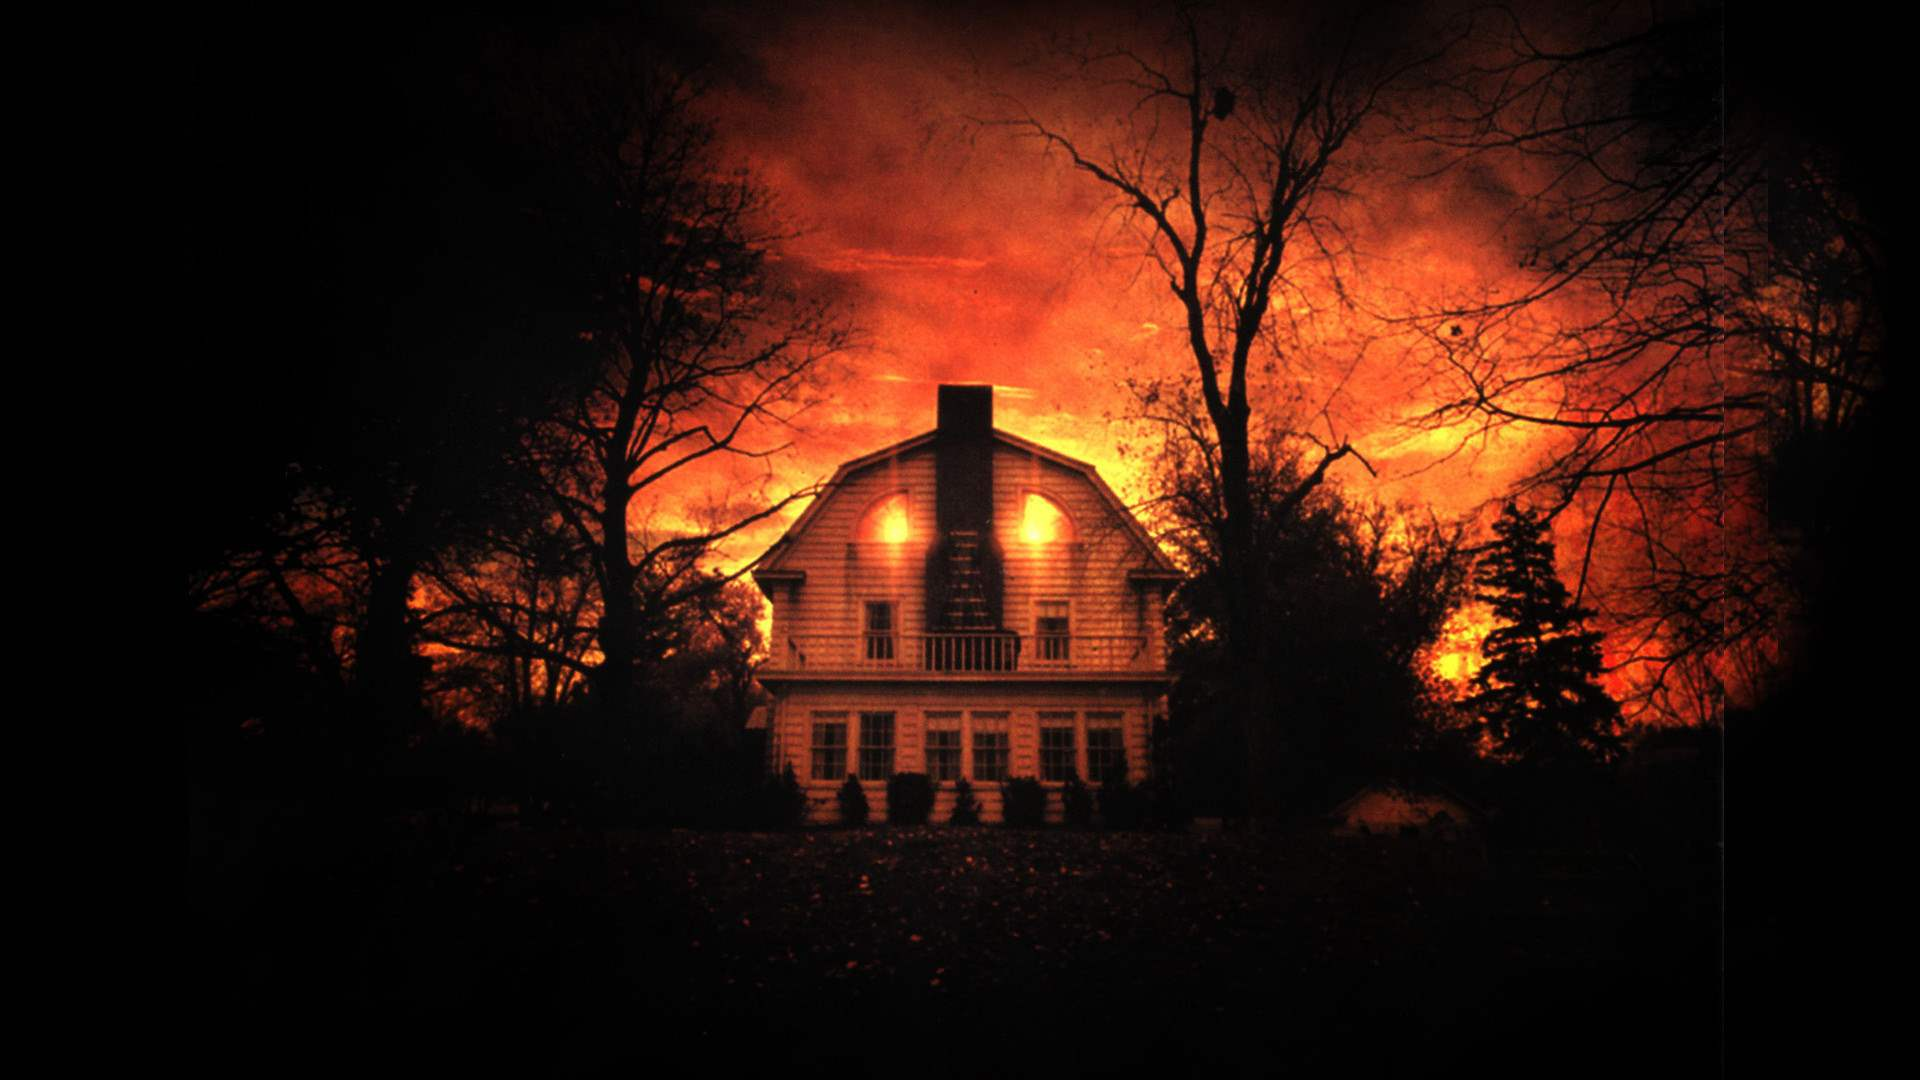 The new Amityville: The Reawakening has yet to set a release date but it looks set for some time in 2015.